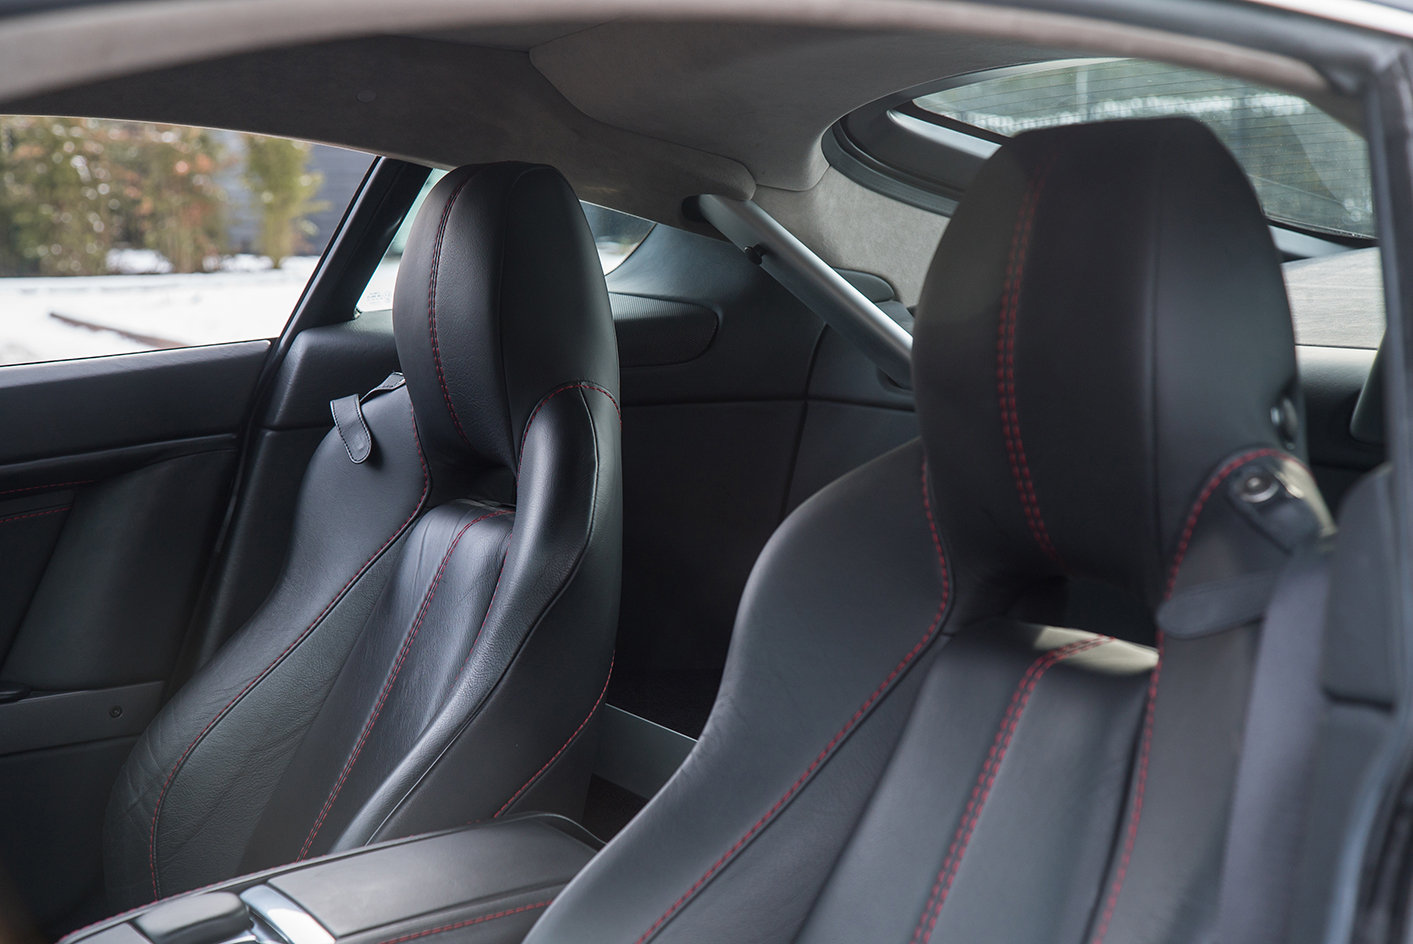 2011 Aston Martin Vantage 4.7 Sportshift Coupe For Sale (picture 3 of 6)